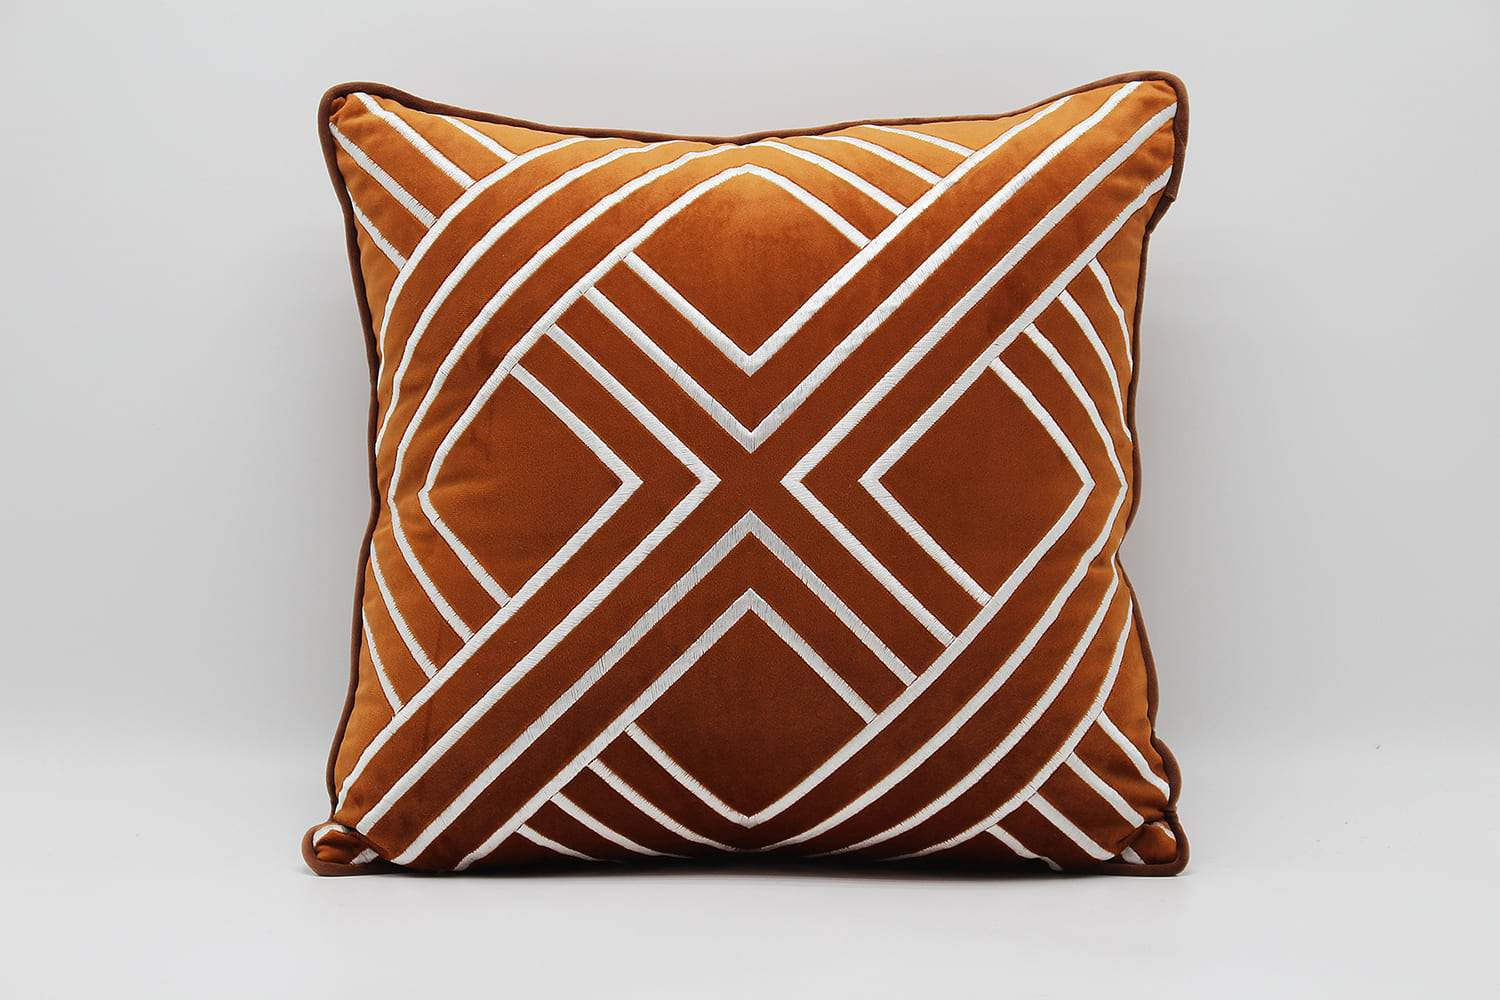 SQUARE LUXURY BROWN  CUSHIONS - ANGIE HOMES ANGIE HOMES